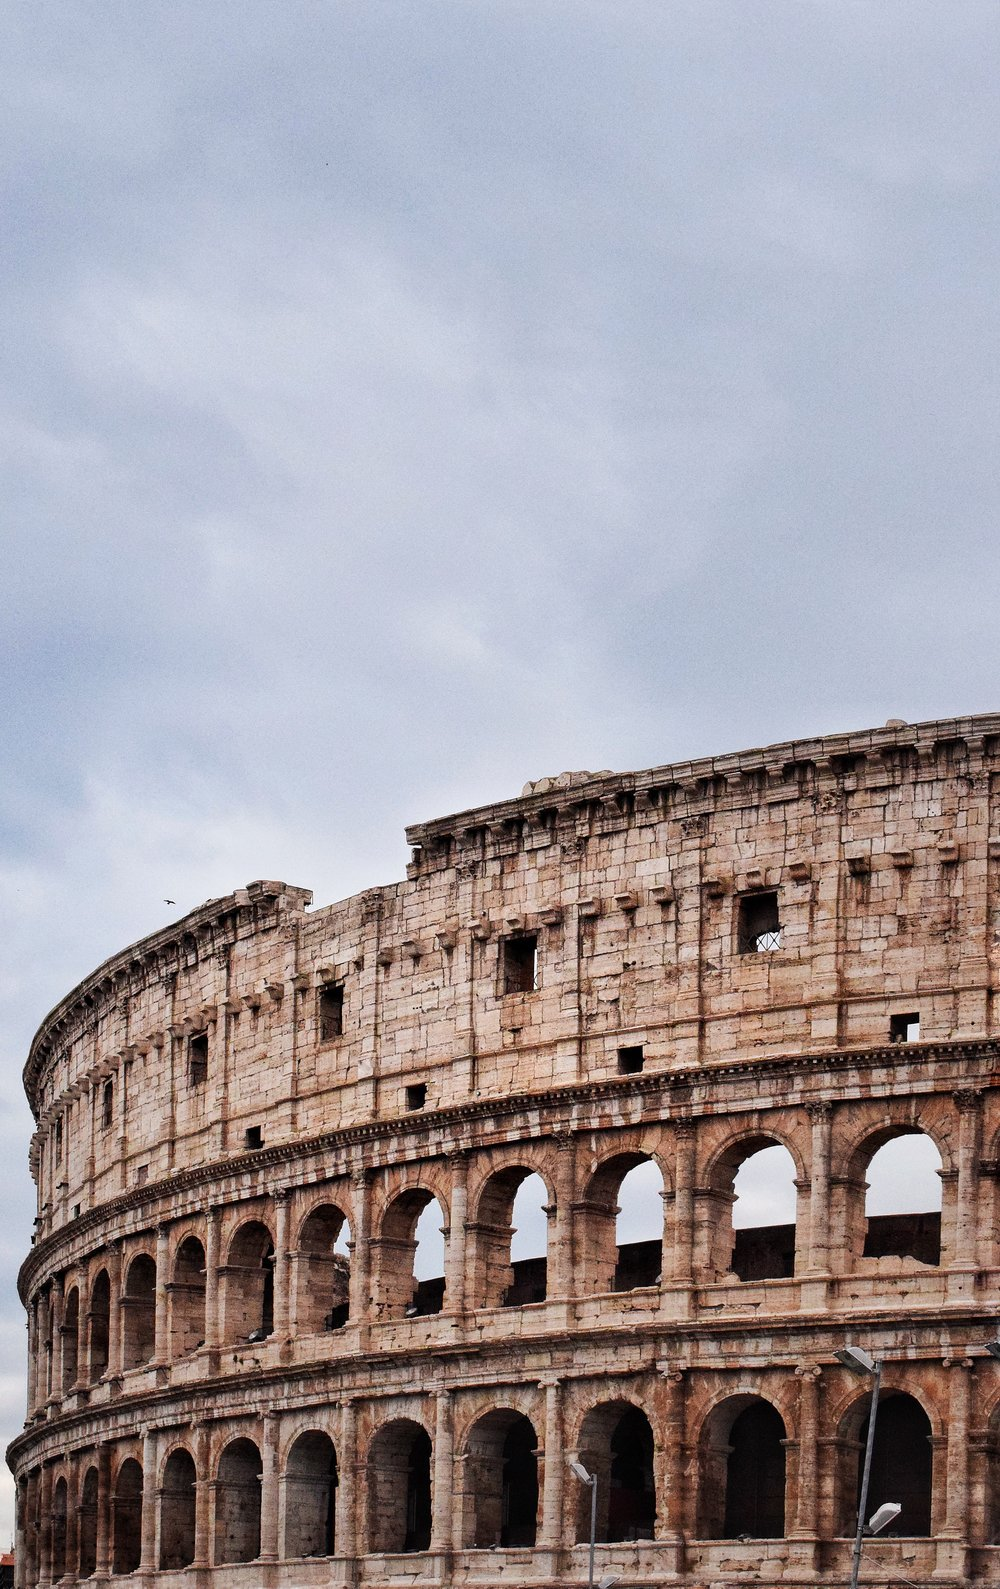 Colosseum-Rome-Brown-Leather-Book